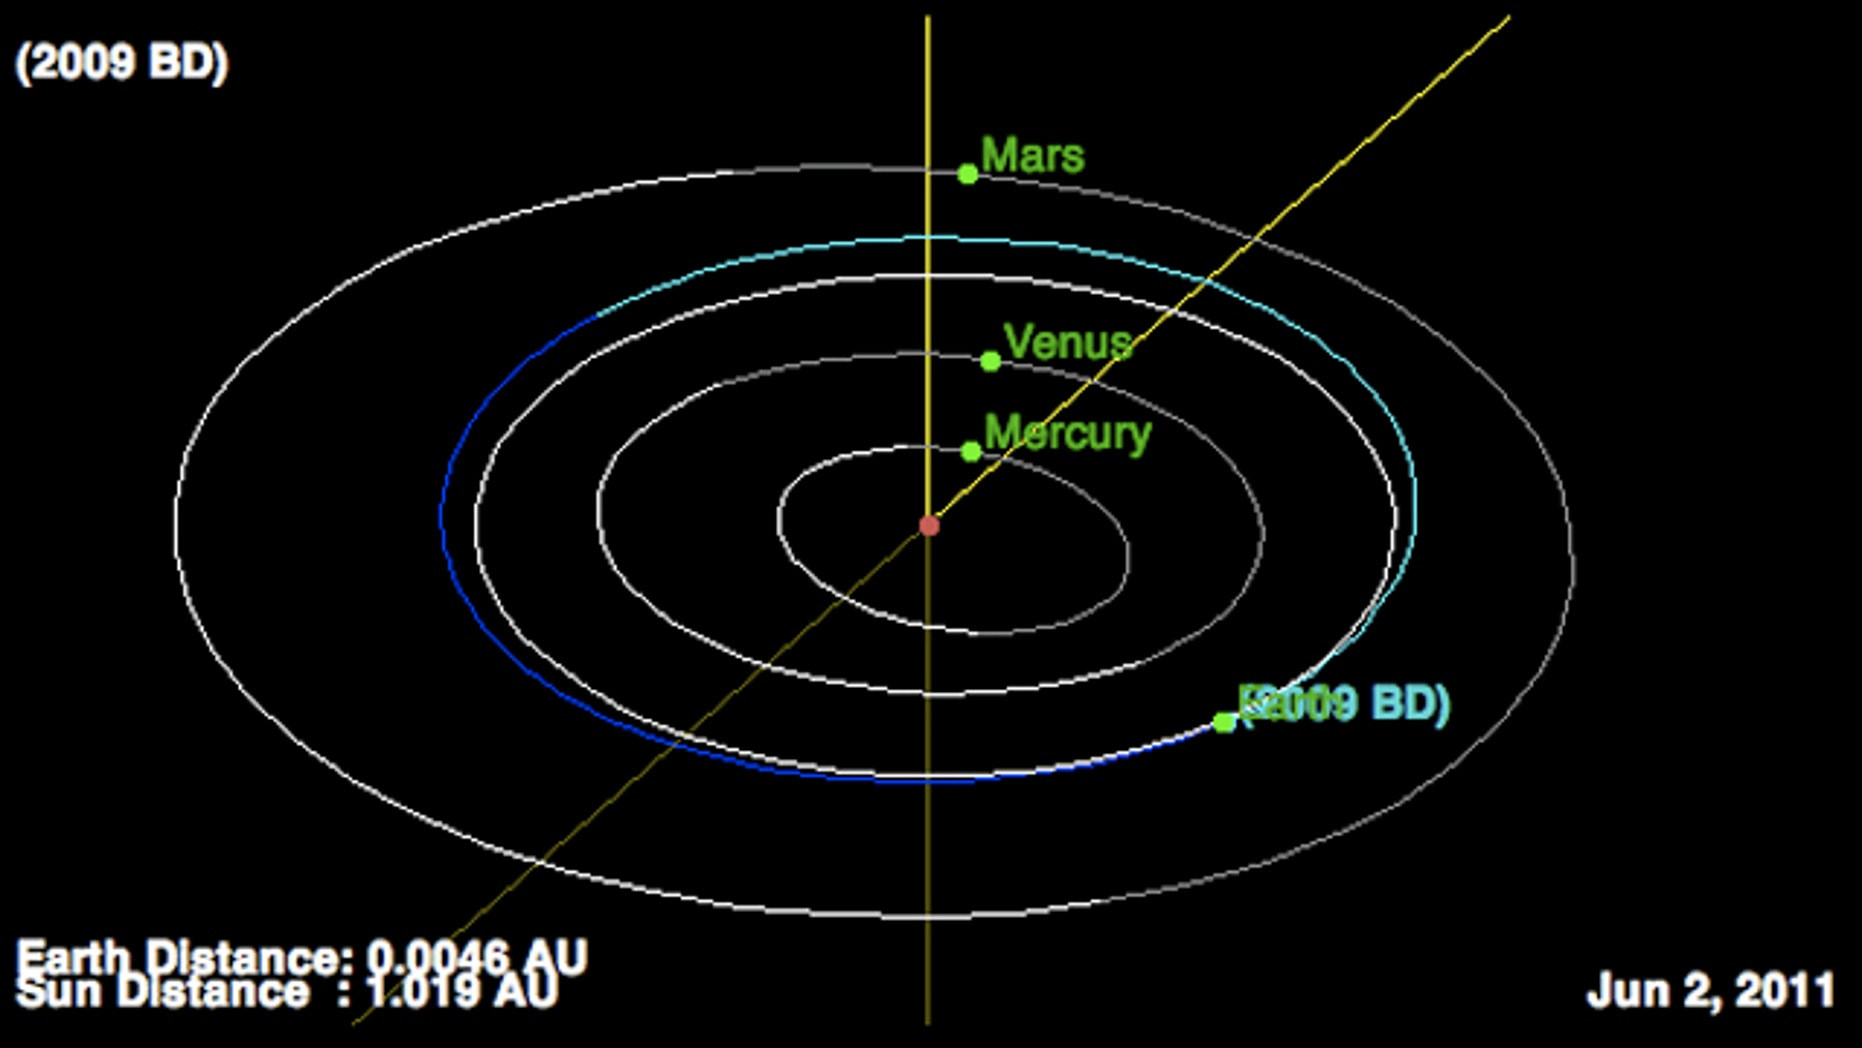 This NASA diagram shows how the orbits of asteroid 2009 BD (blue line) and Earth intersect in early June 2011.